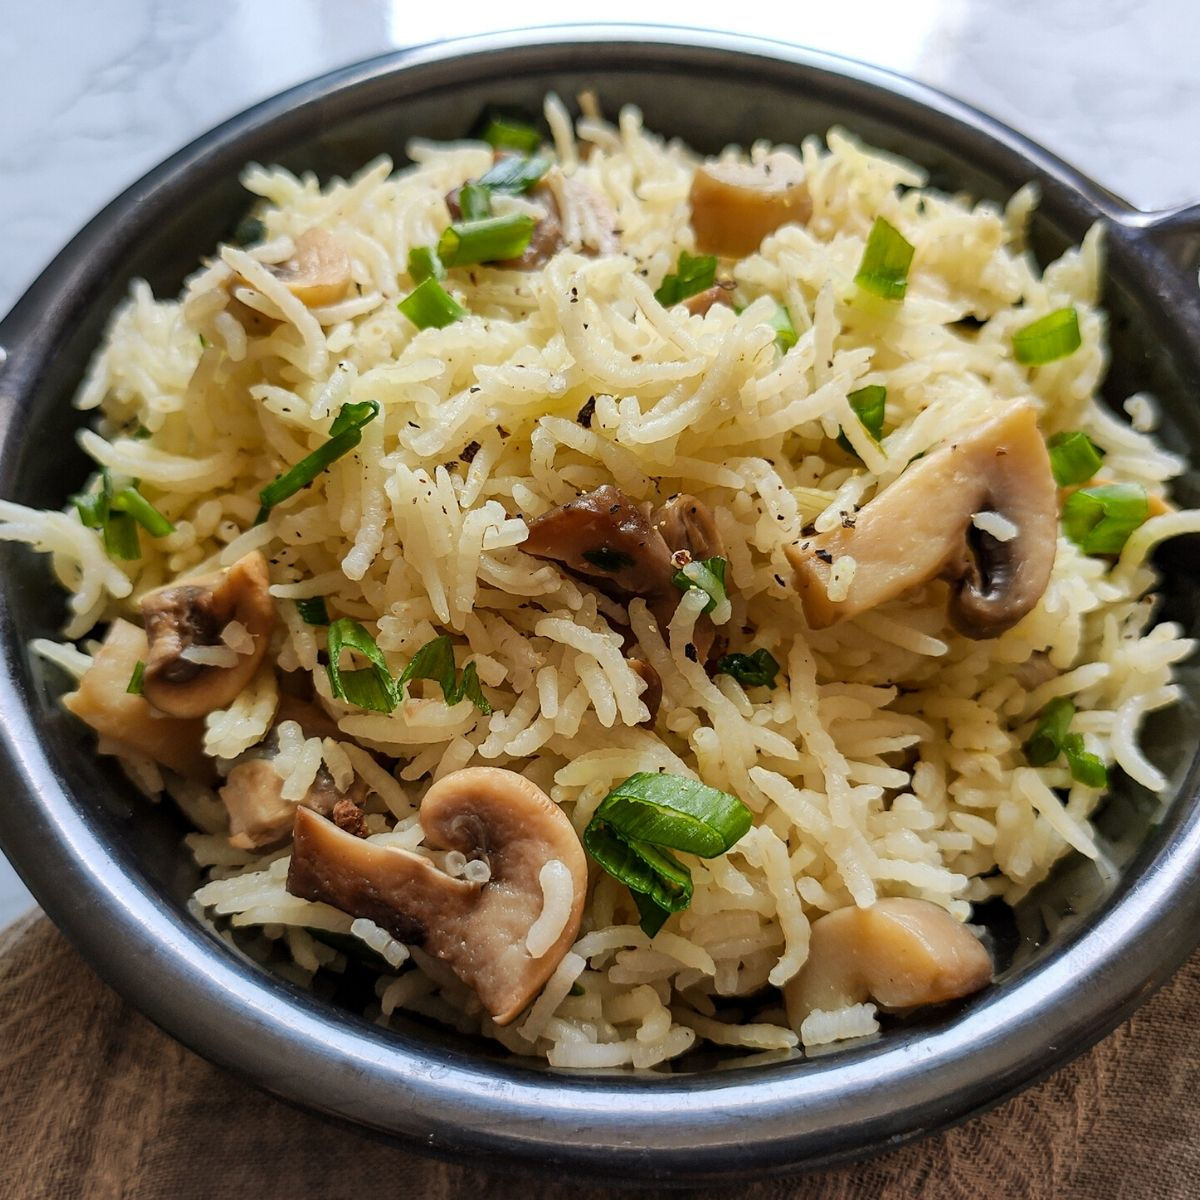 Mushroom rice garnished with chopped spring onion served on a black wok